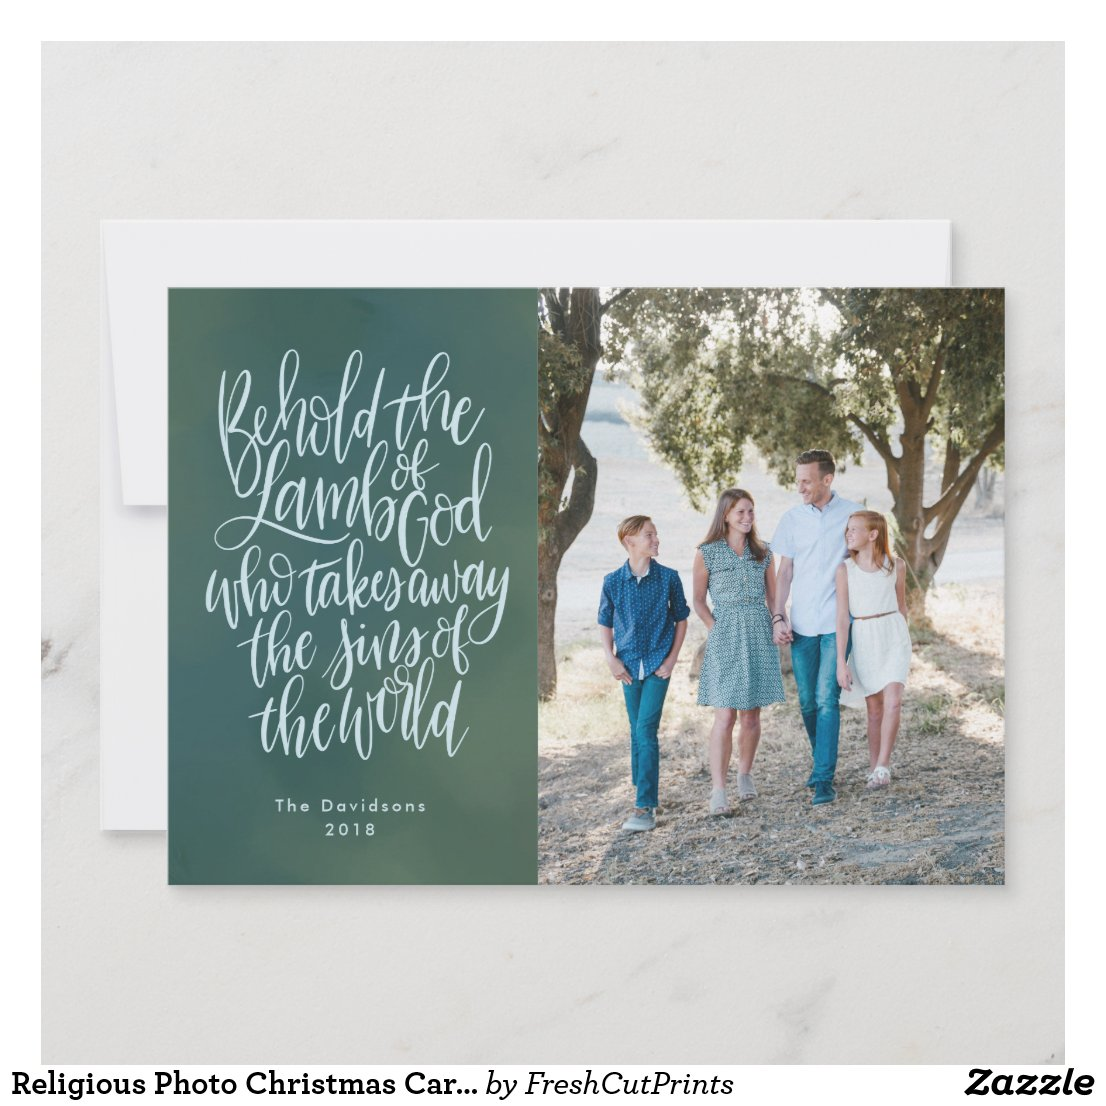 Religious Photo Christmas Card with Bible Verse